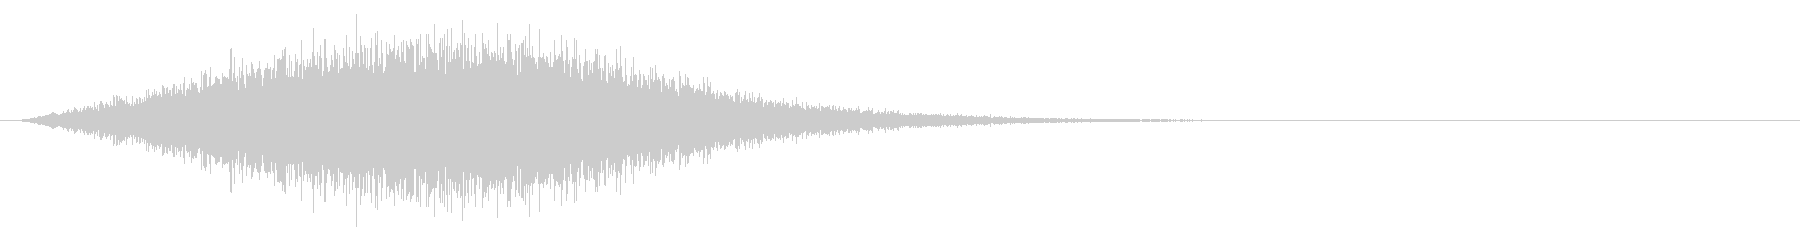 Sound of chanting or activating magic # 8's unreproduced waveform